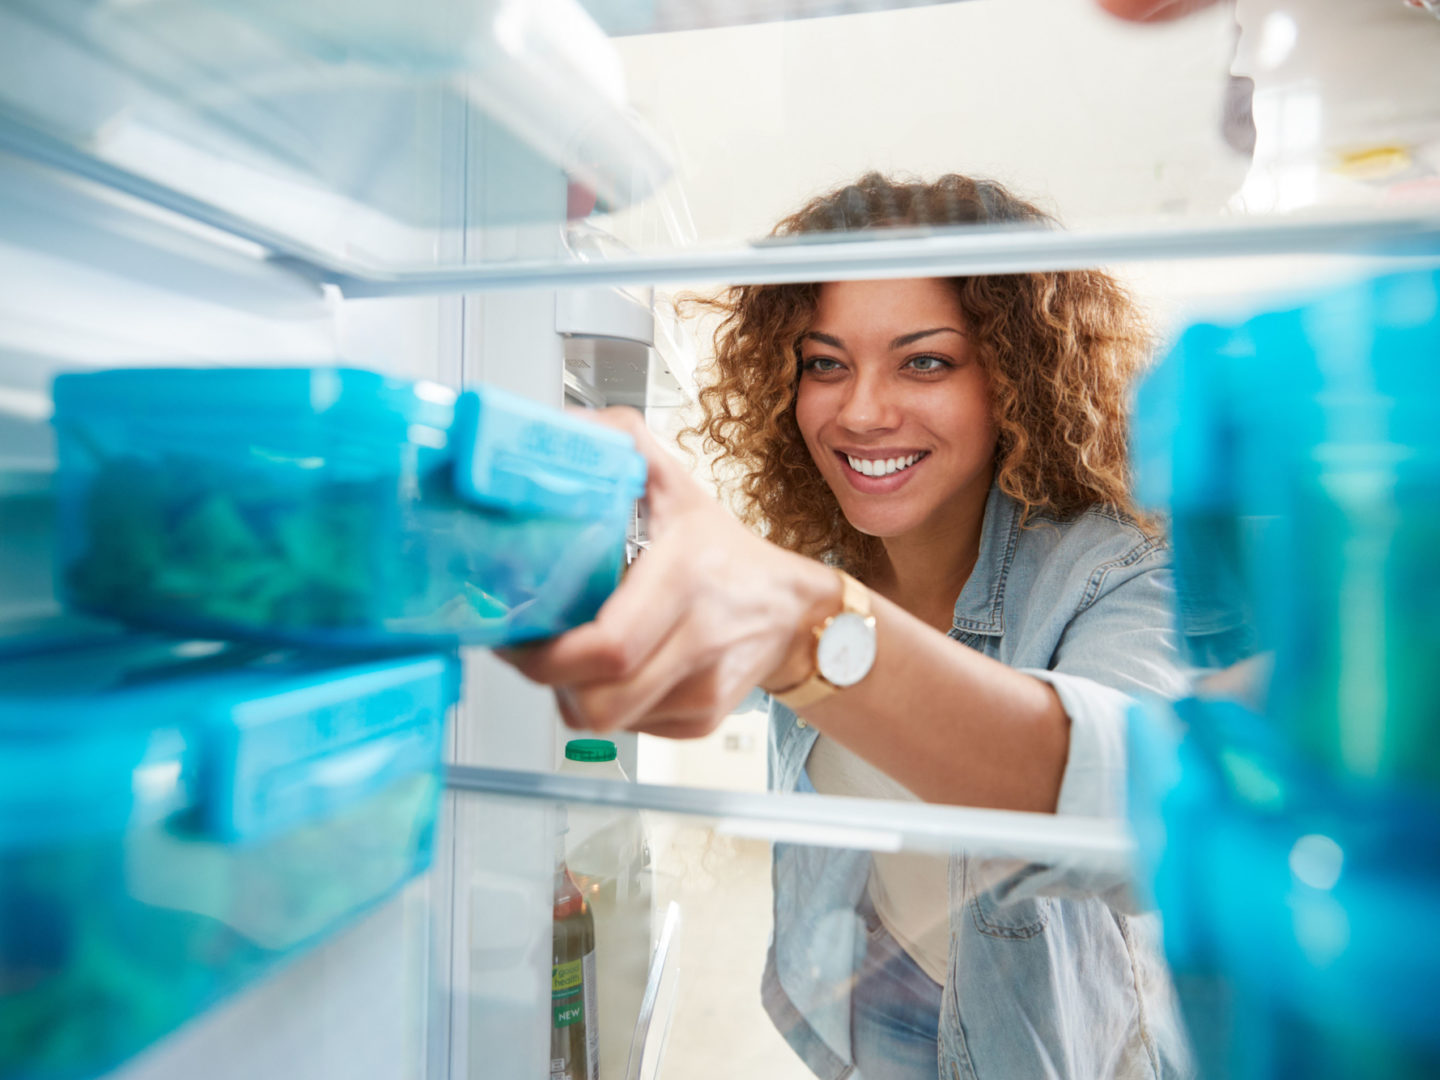 Woman removing ingredients from refrigerator - Cooking | NSF International